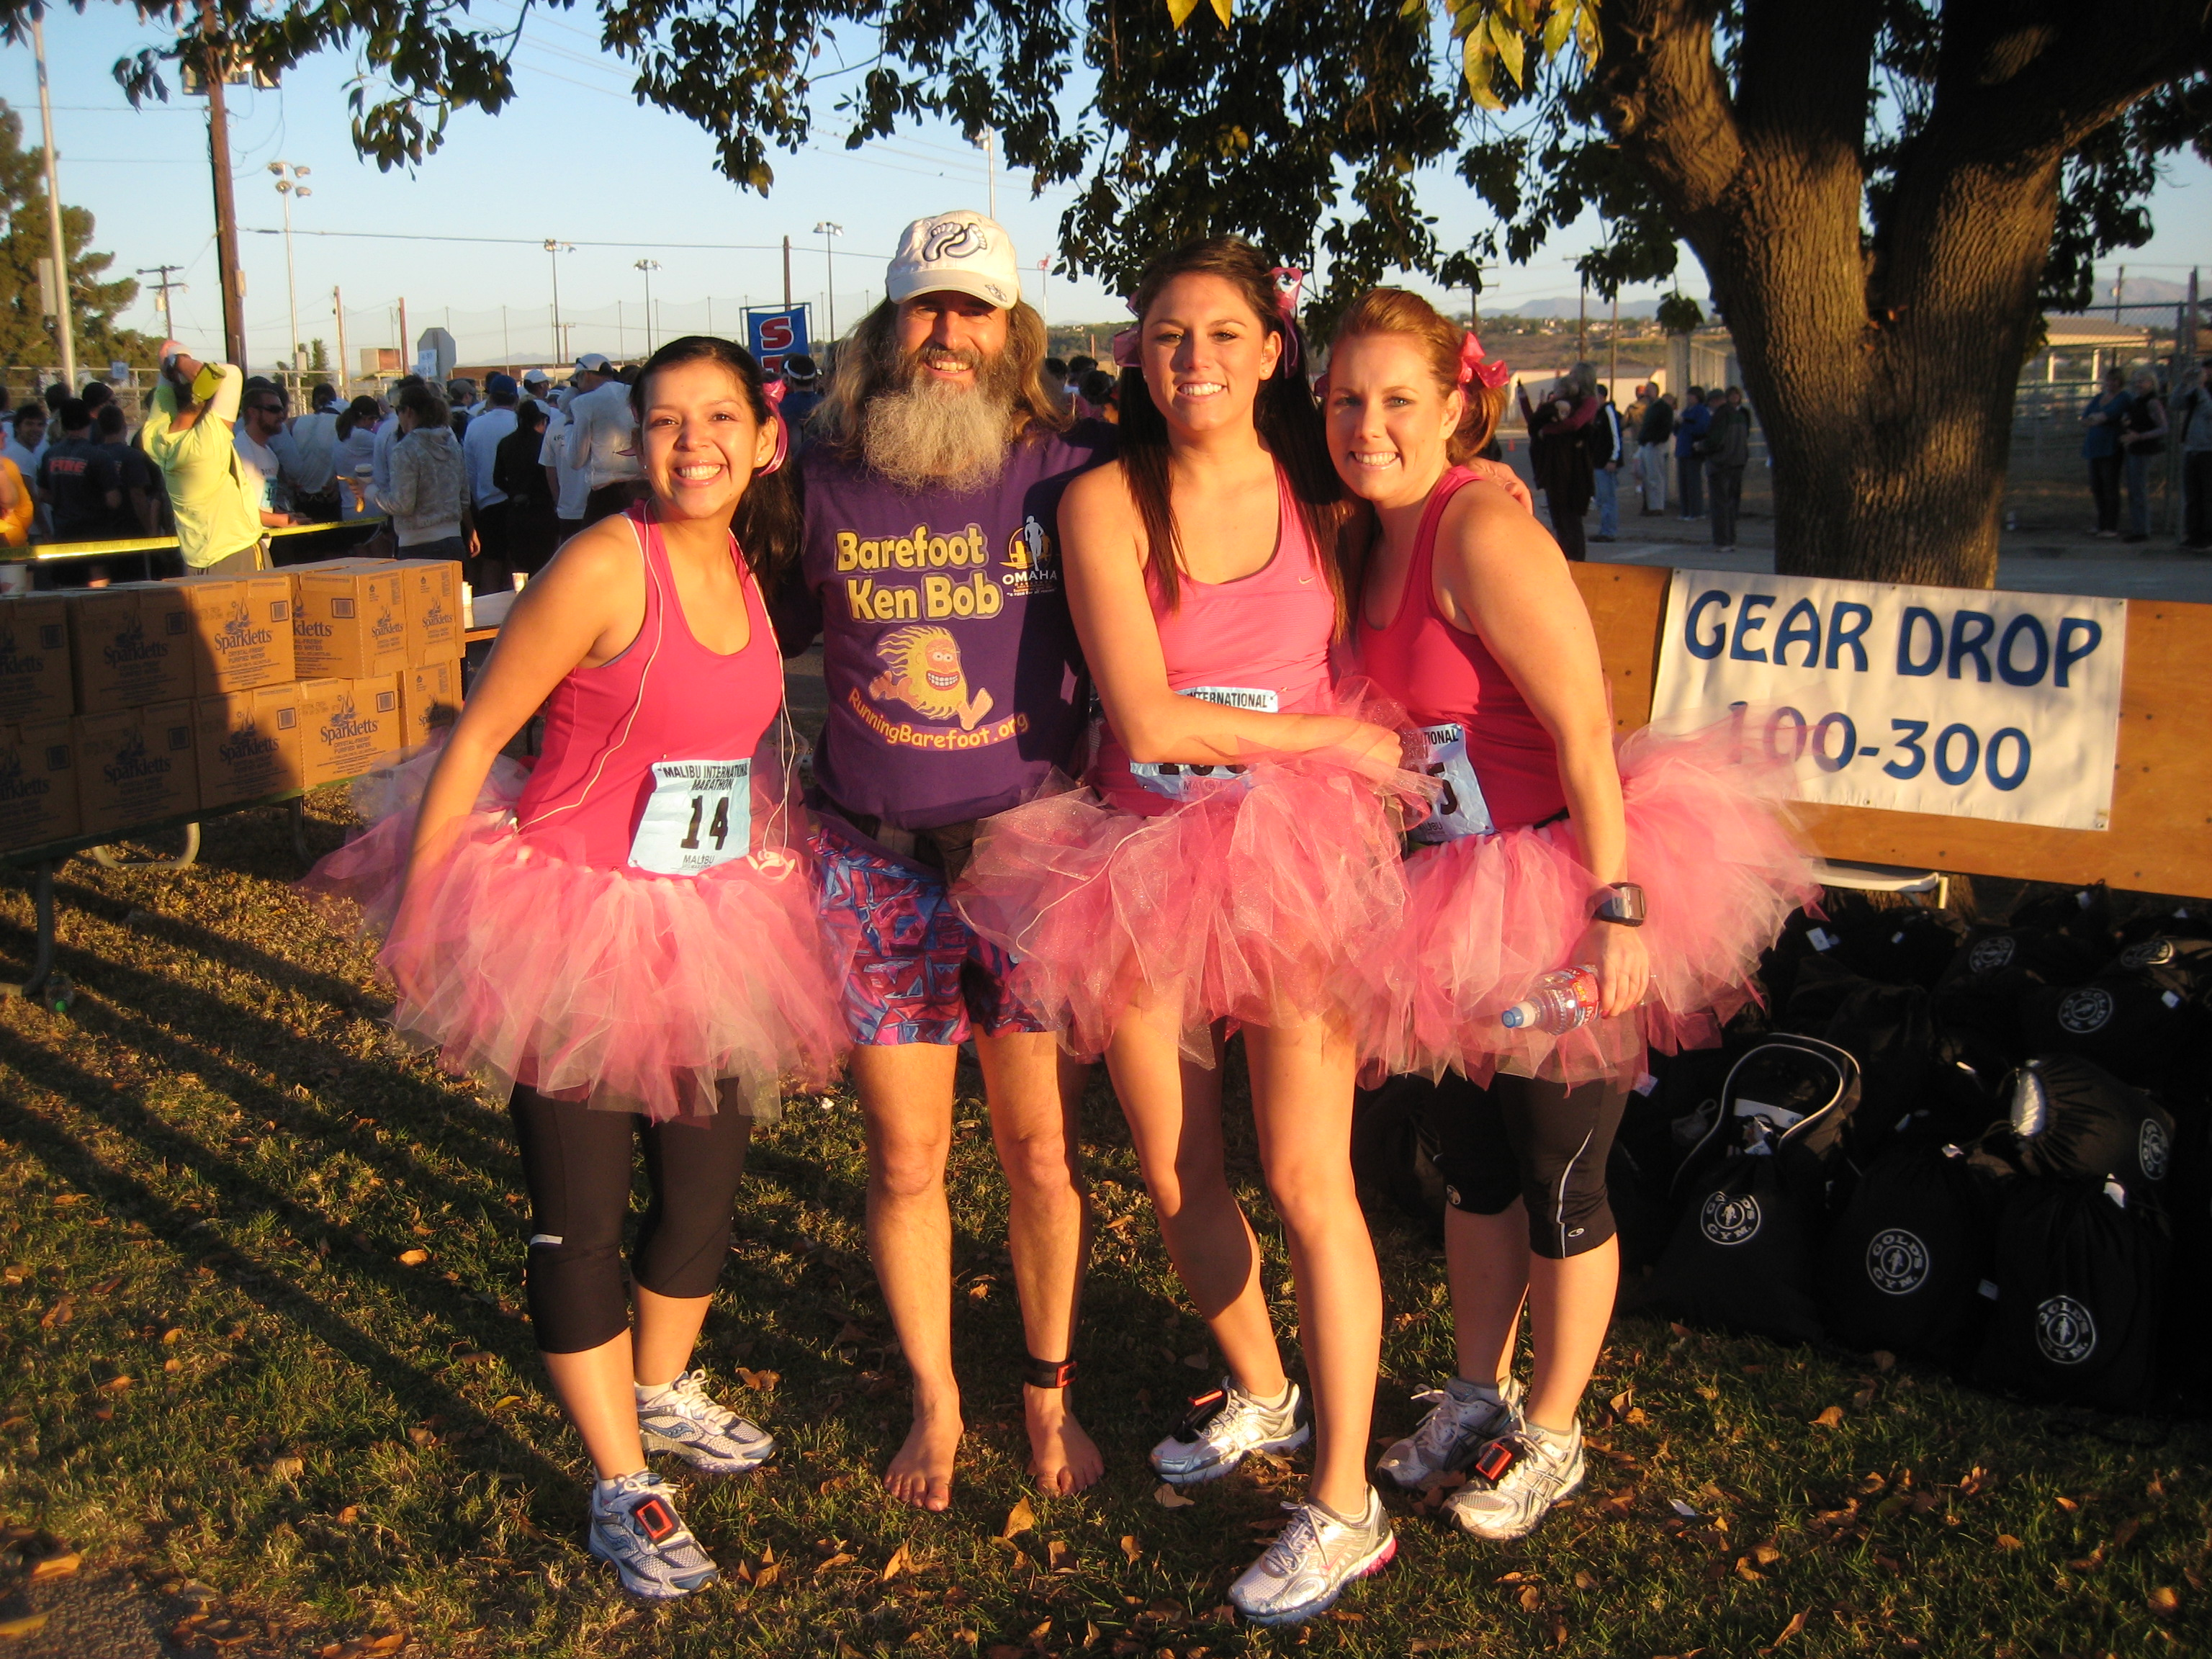 Ken Bob with girls in tutus